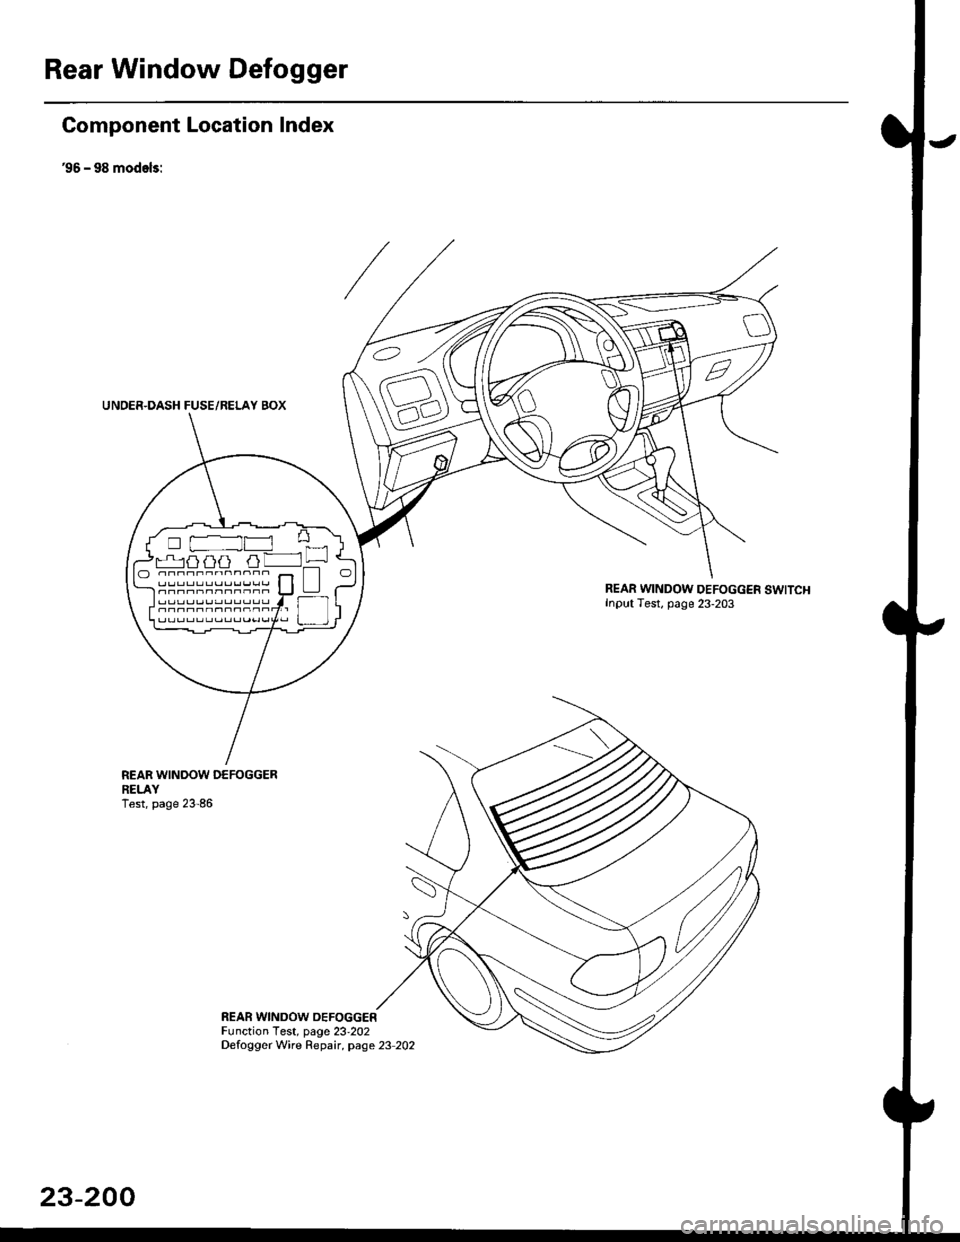 how to test a car horn with a battery